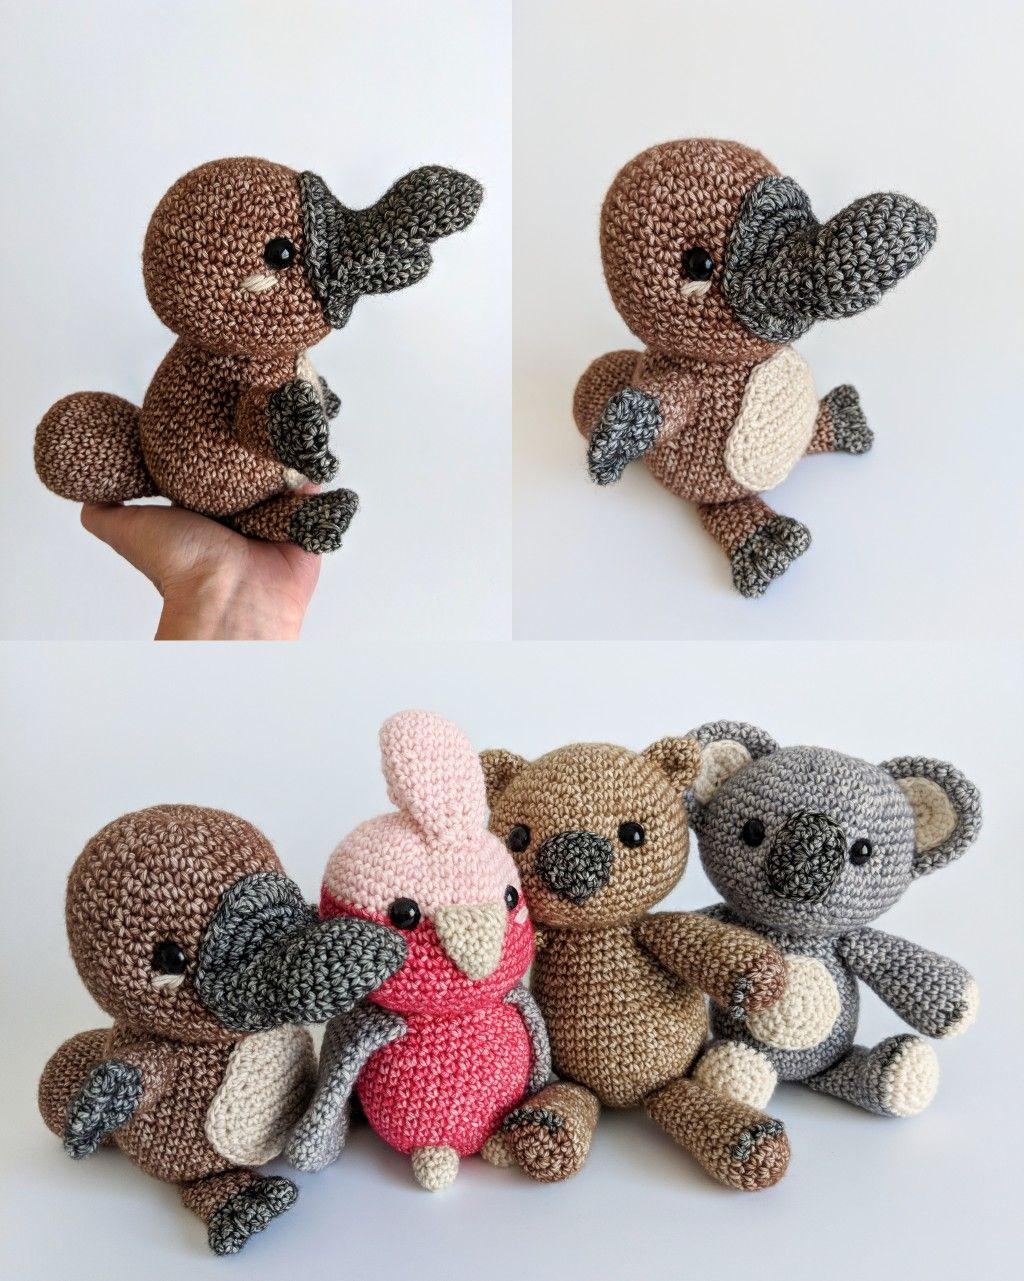 Amigurumi Today - Free amigurumi patterns and amigurumi tutorials | 1281x1024